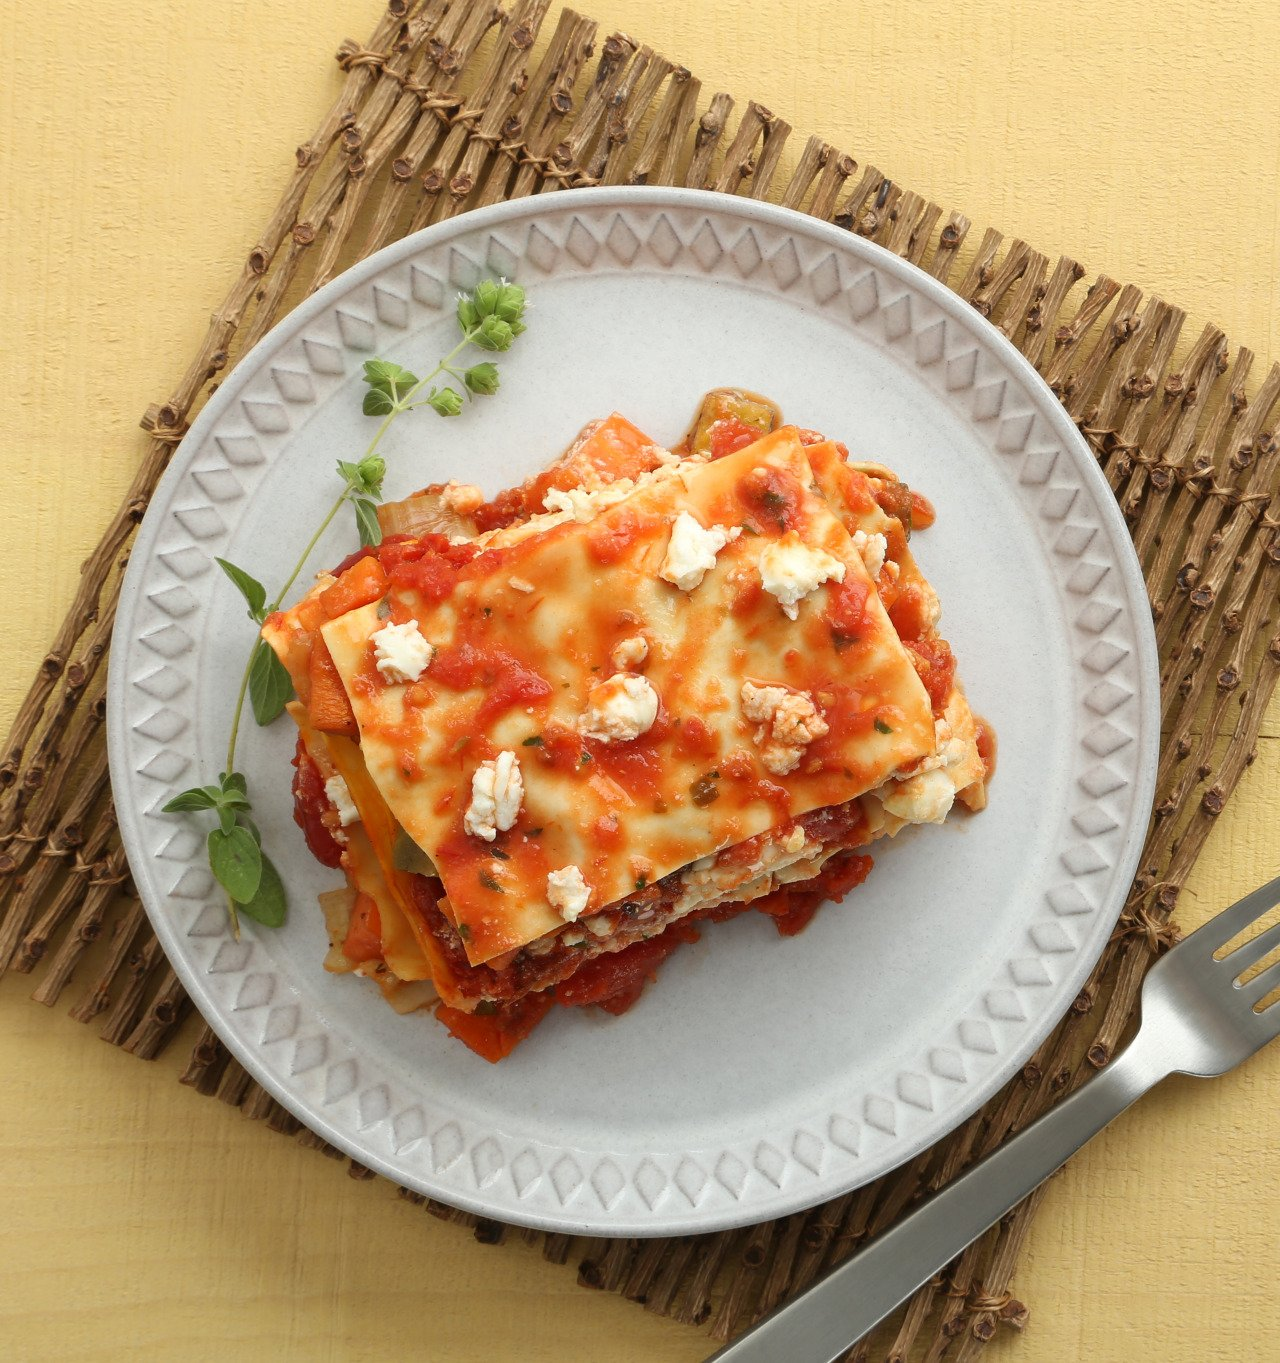 Roasted Vegetable Goat Cheese Lasagna